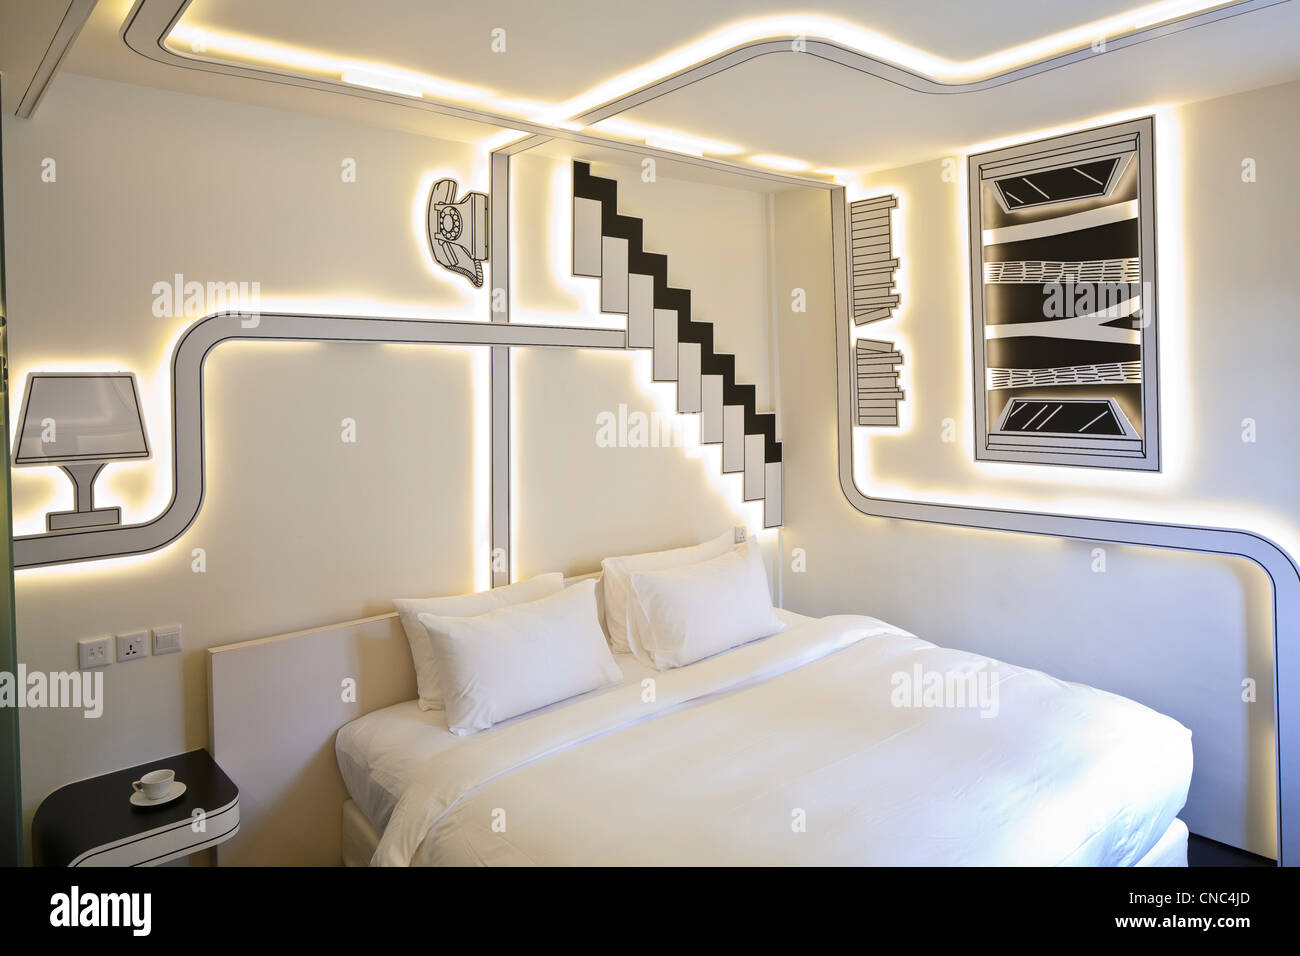 Singapore, Little India, Wanderlust Hotel, located in a building from the 1920's, room Directionless by DP Architects - Stock Image